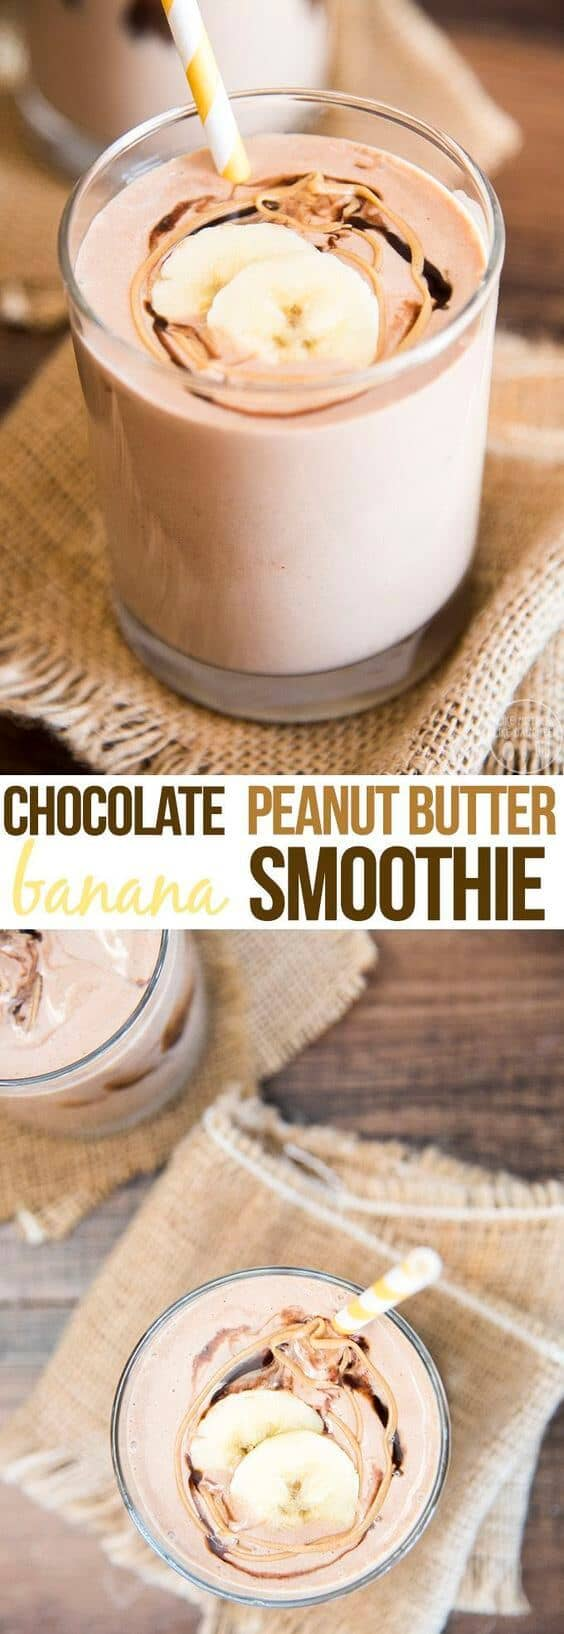 Breakfast Peanut Butter Chocolate Banana Smoothie